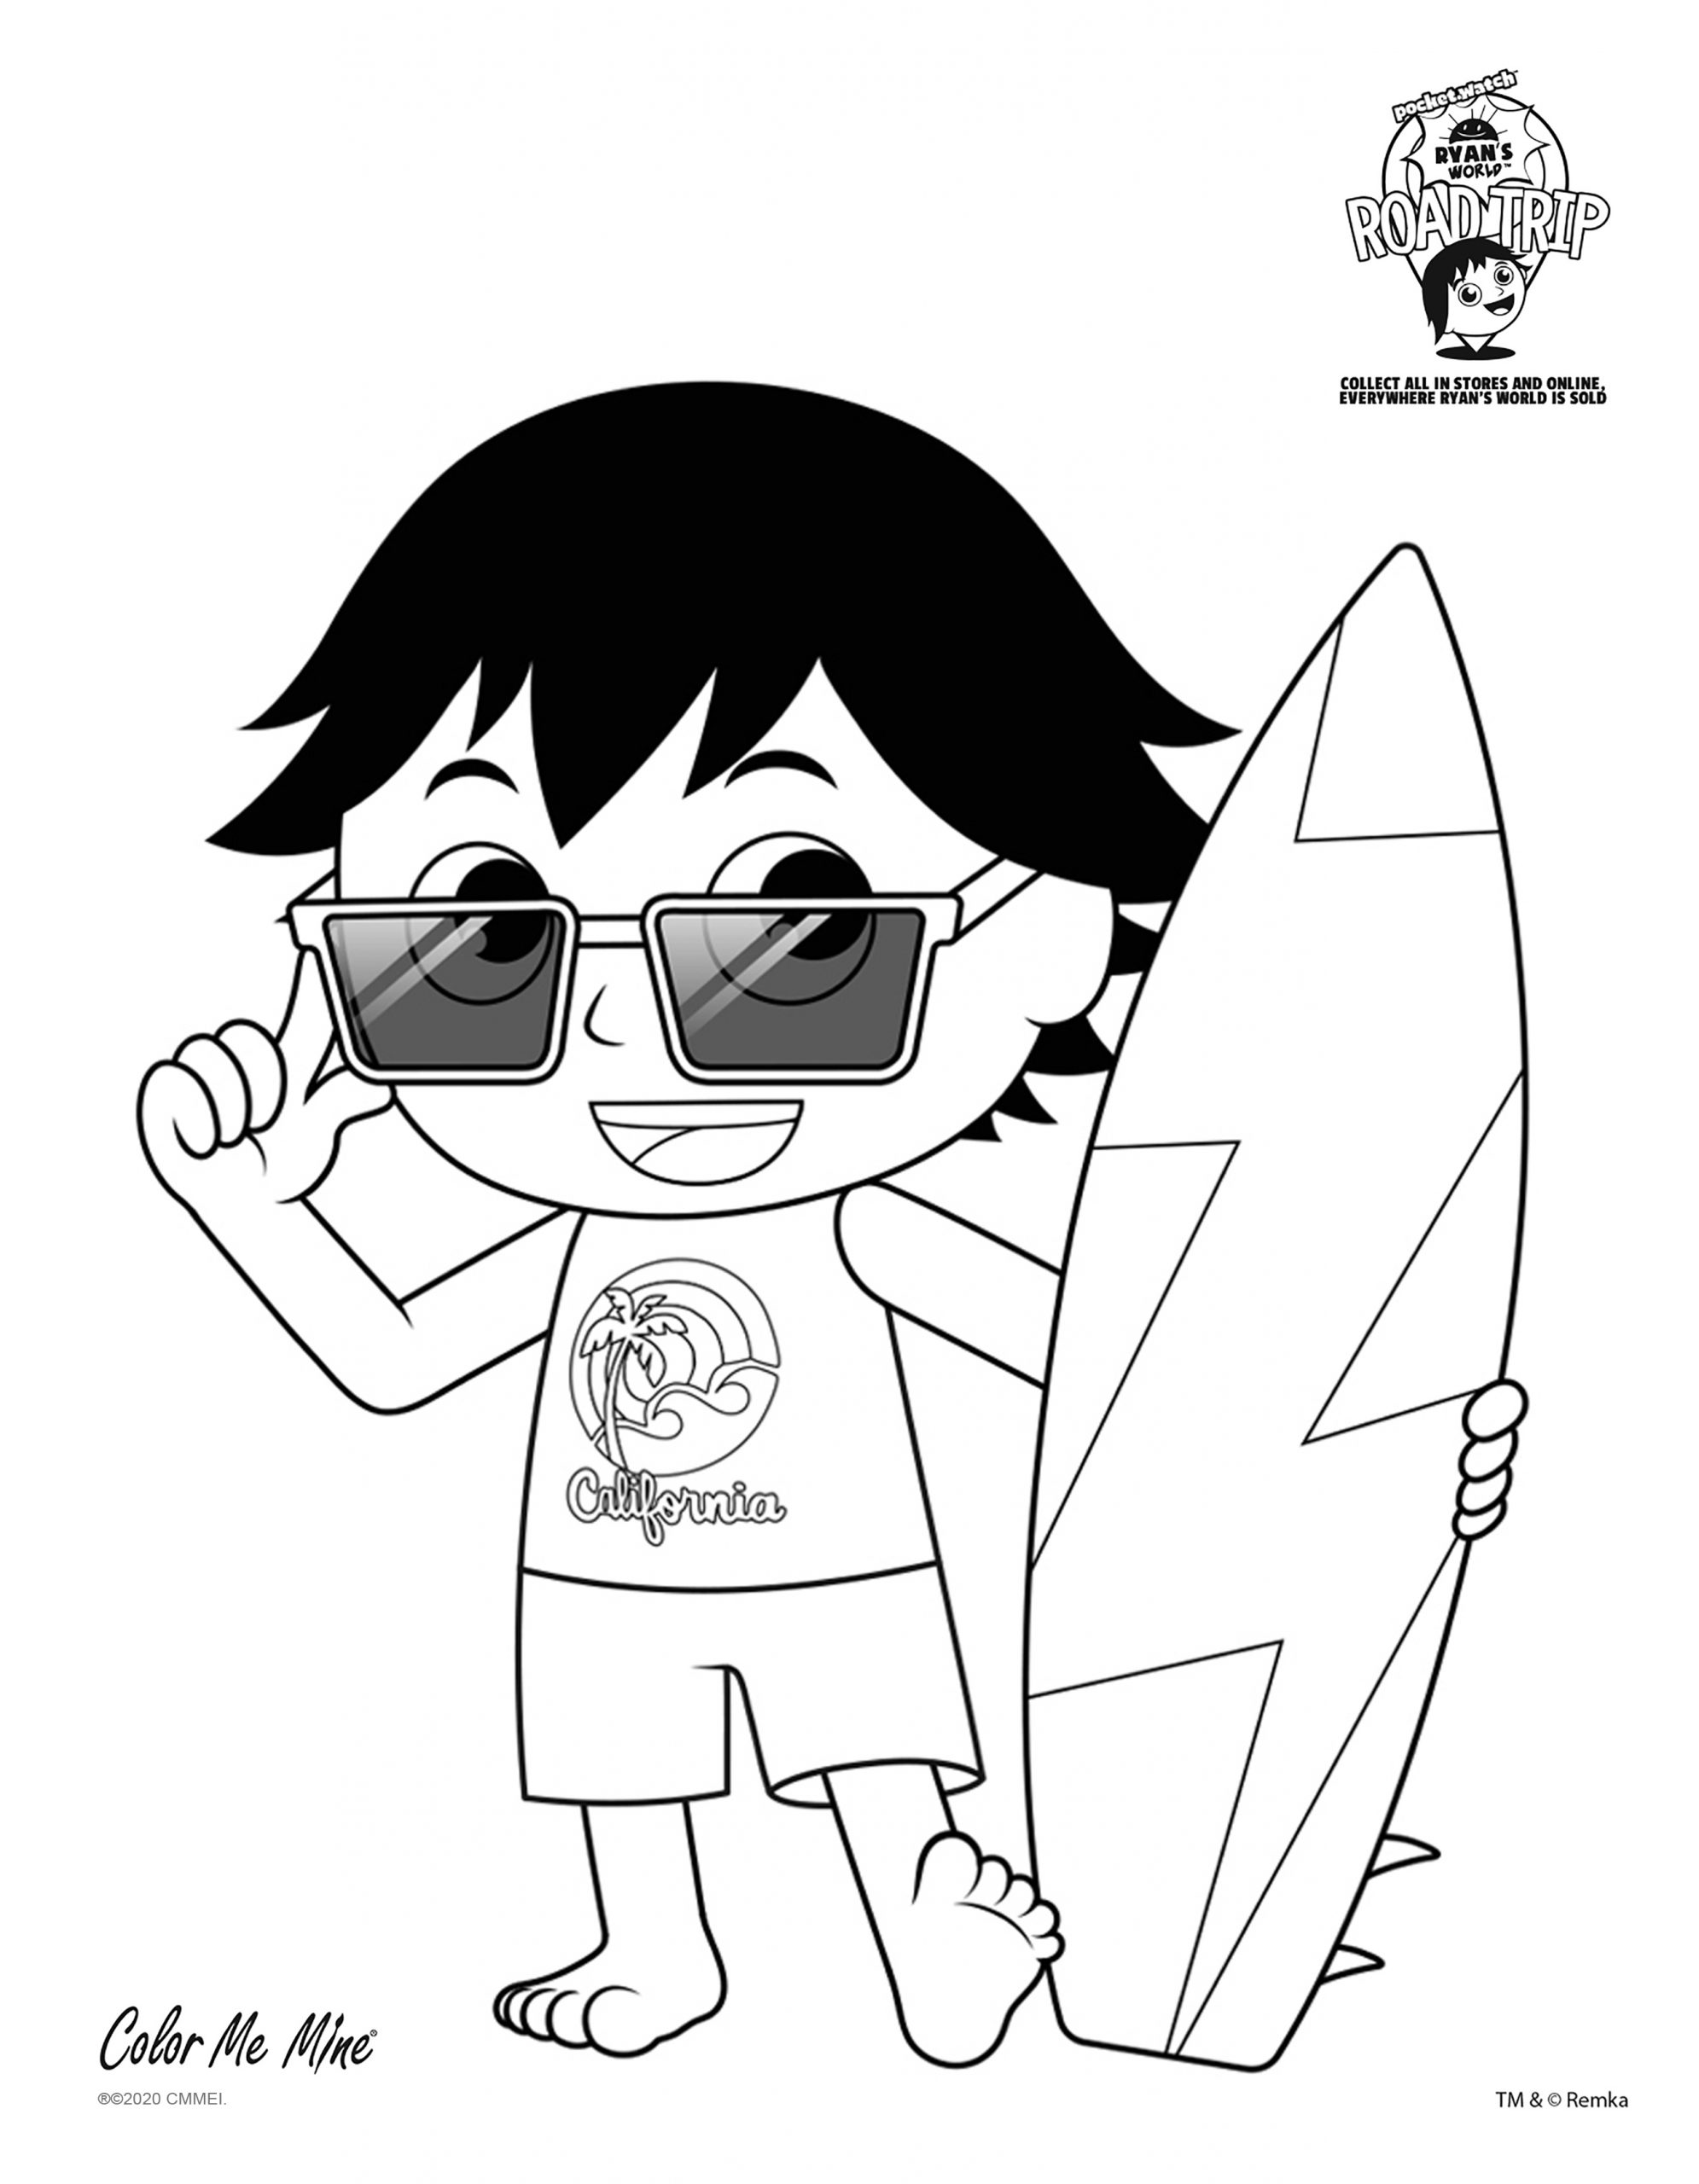 Ryan Coloring Pages : coloring, pages, Ryan's, World, Coloring, Edison